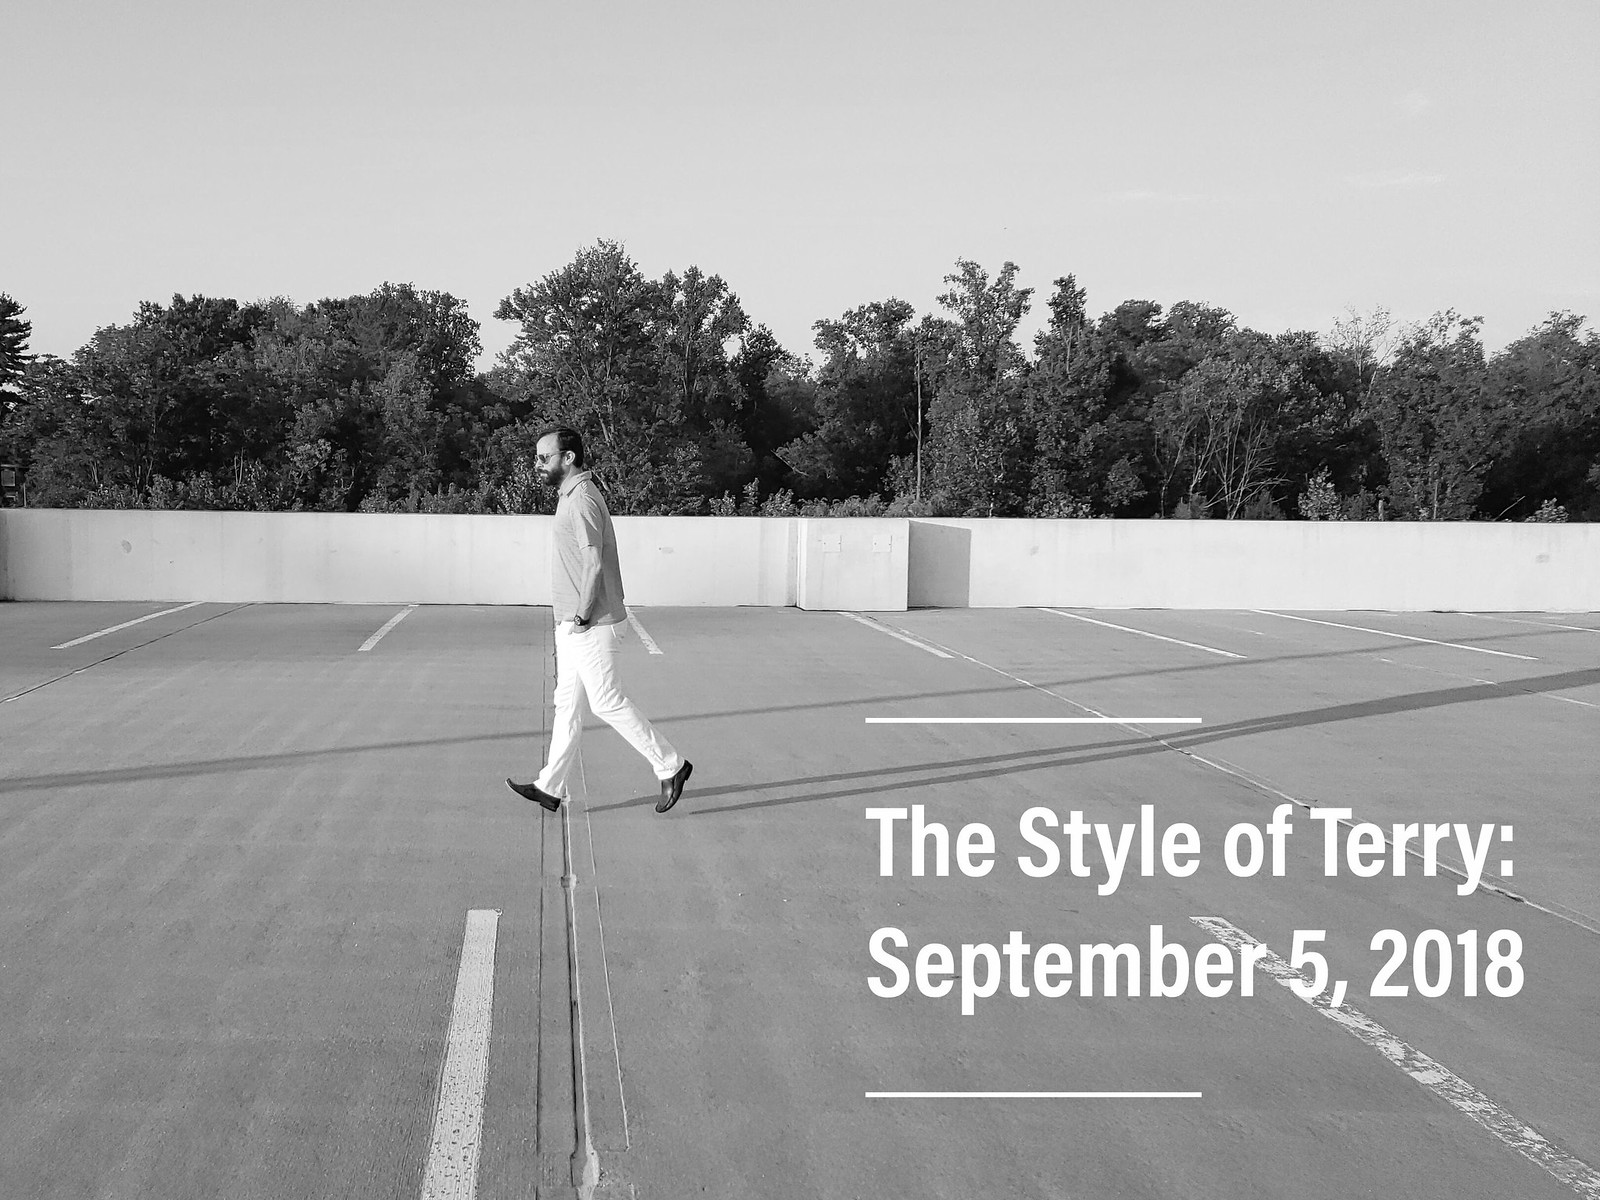 The Style of Terry: 9.5.18